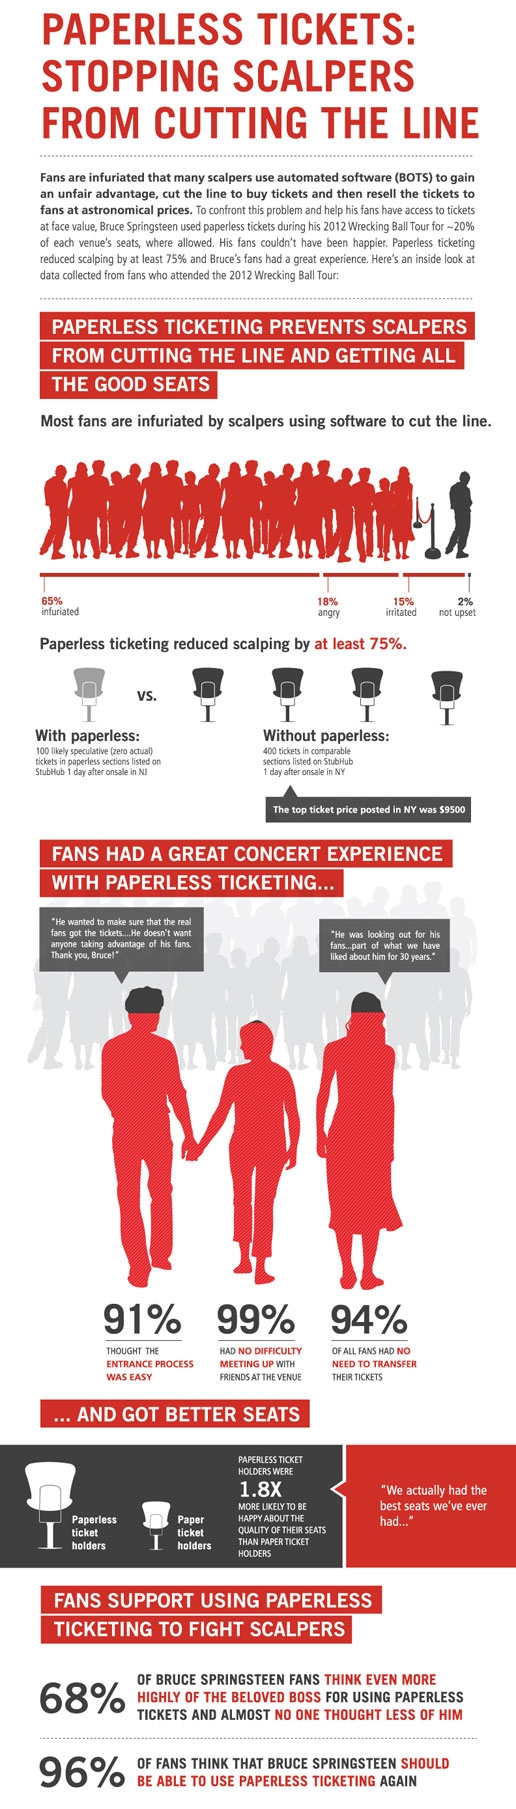 Paperless ticketing stops scalpers